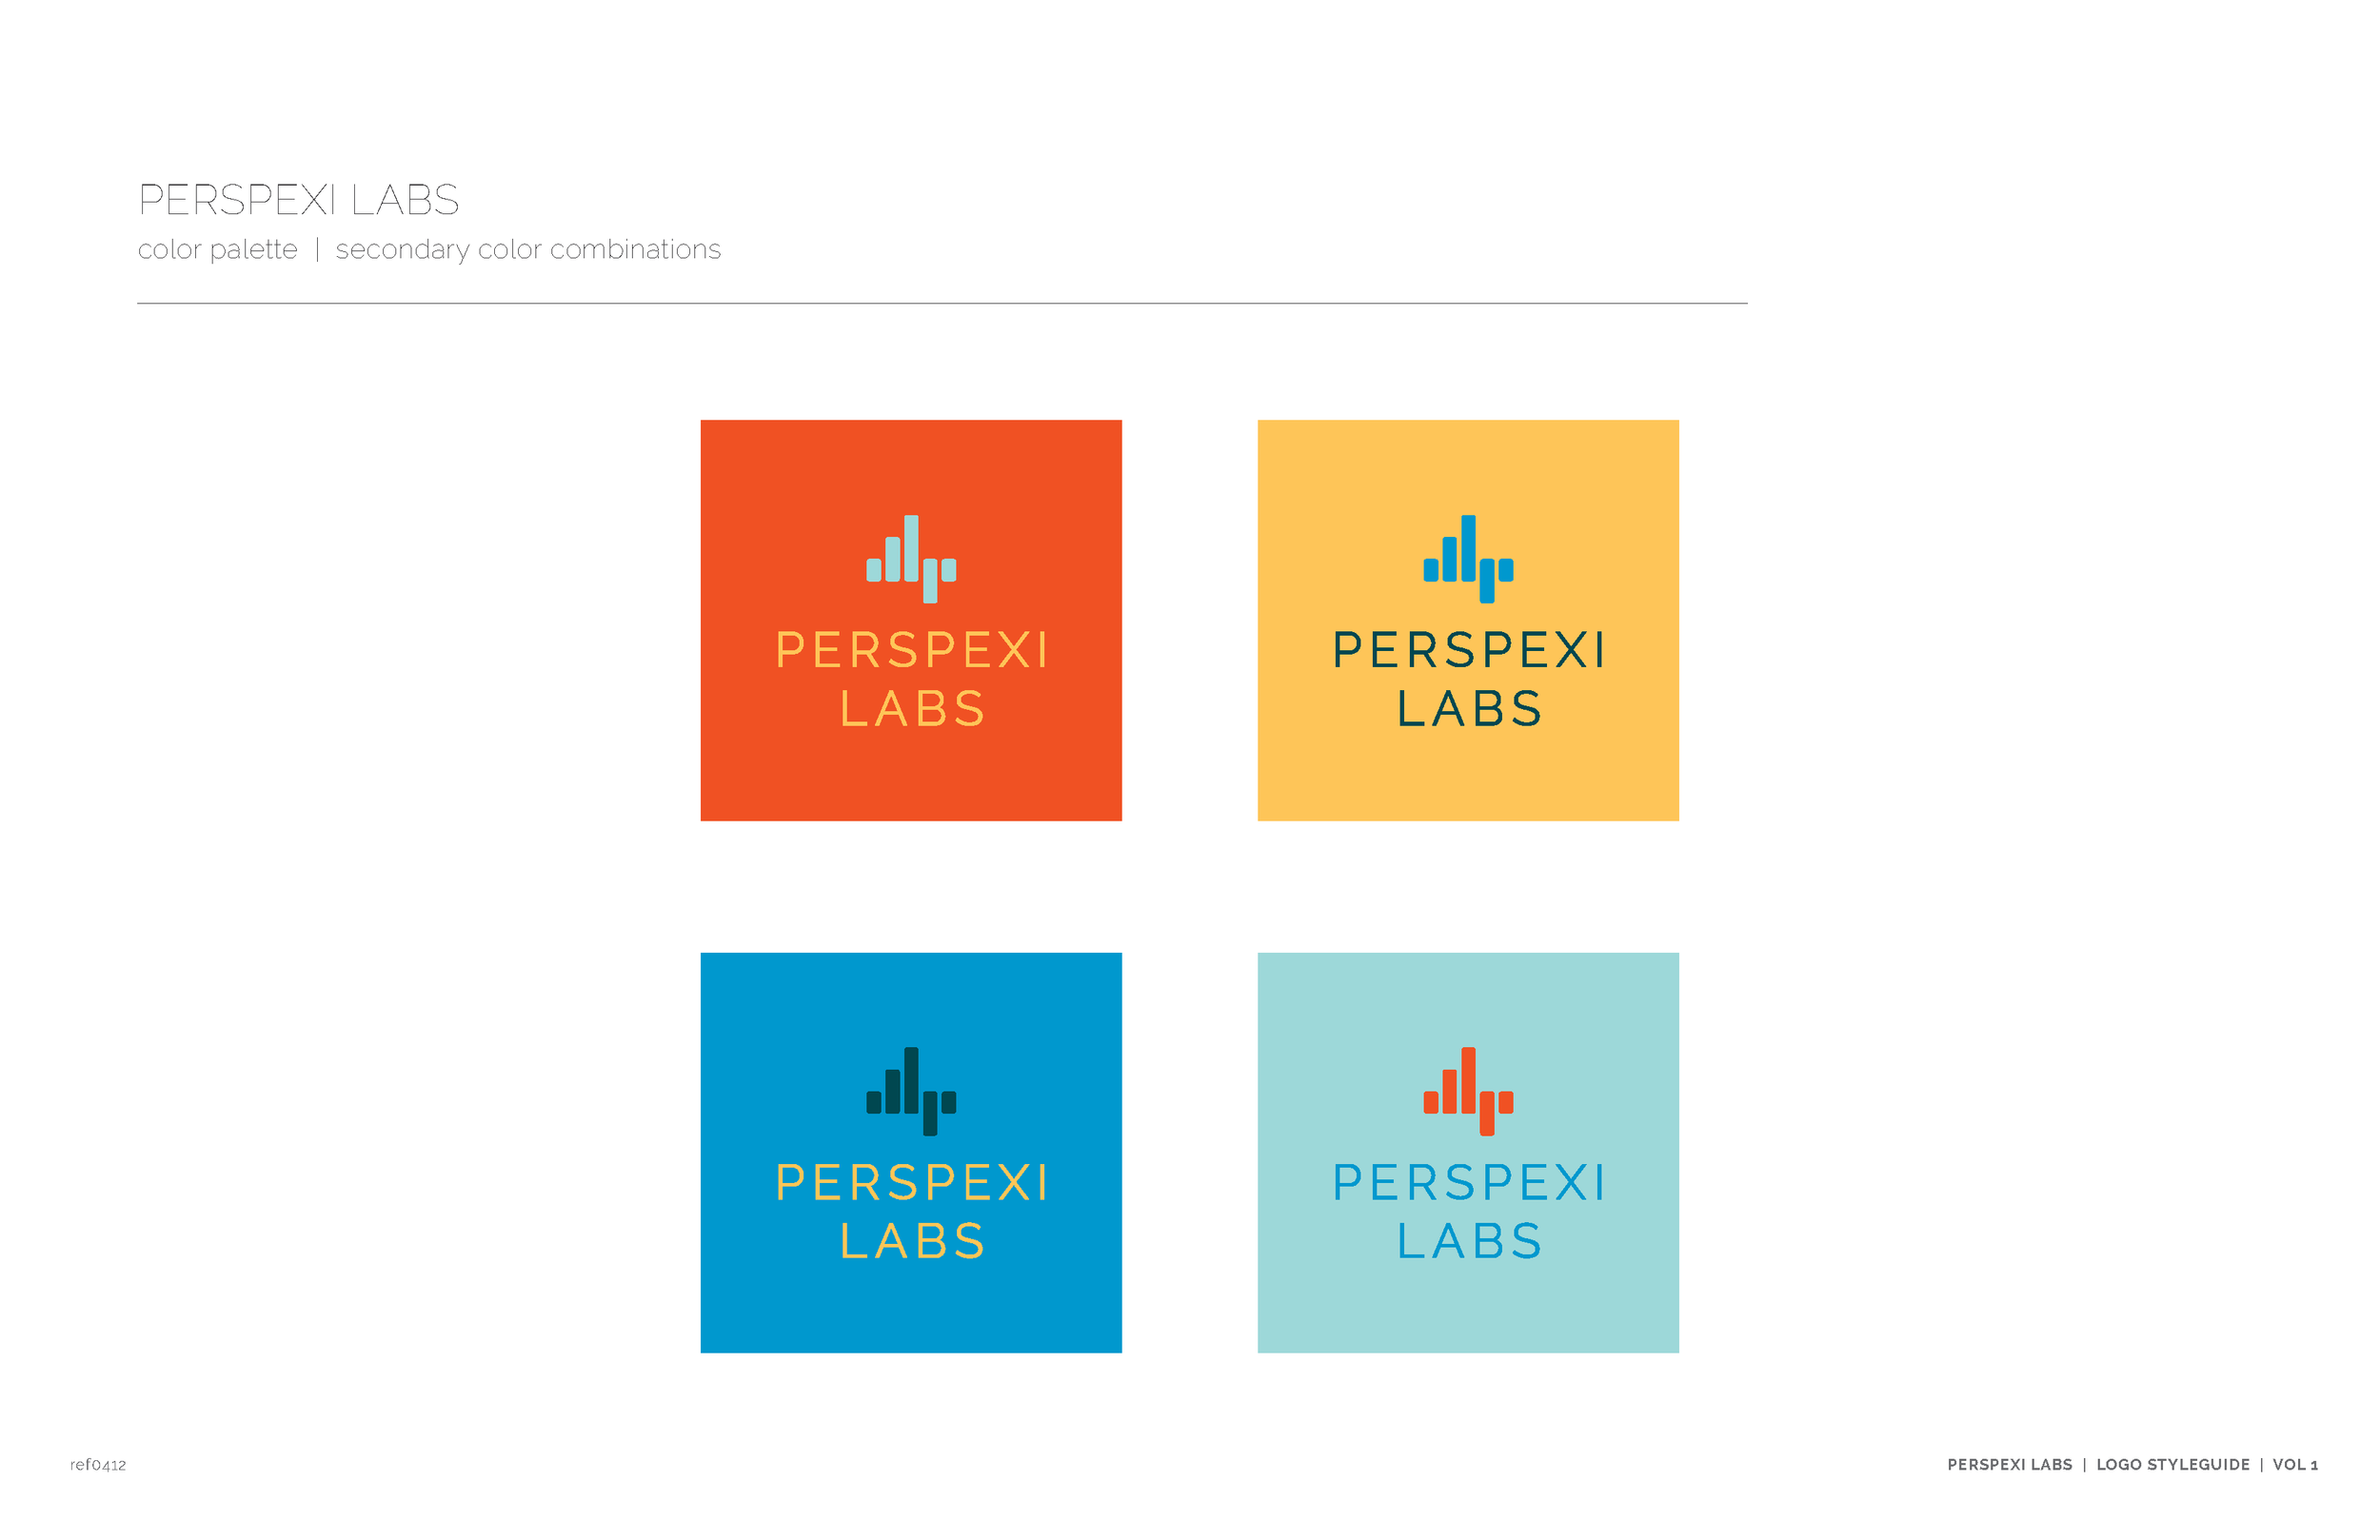 0412_StyleGuide_PerspexiLabs_Page_09.png